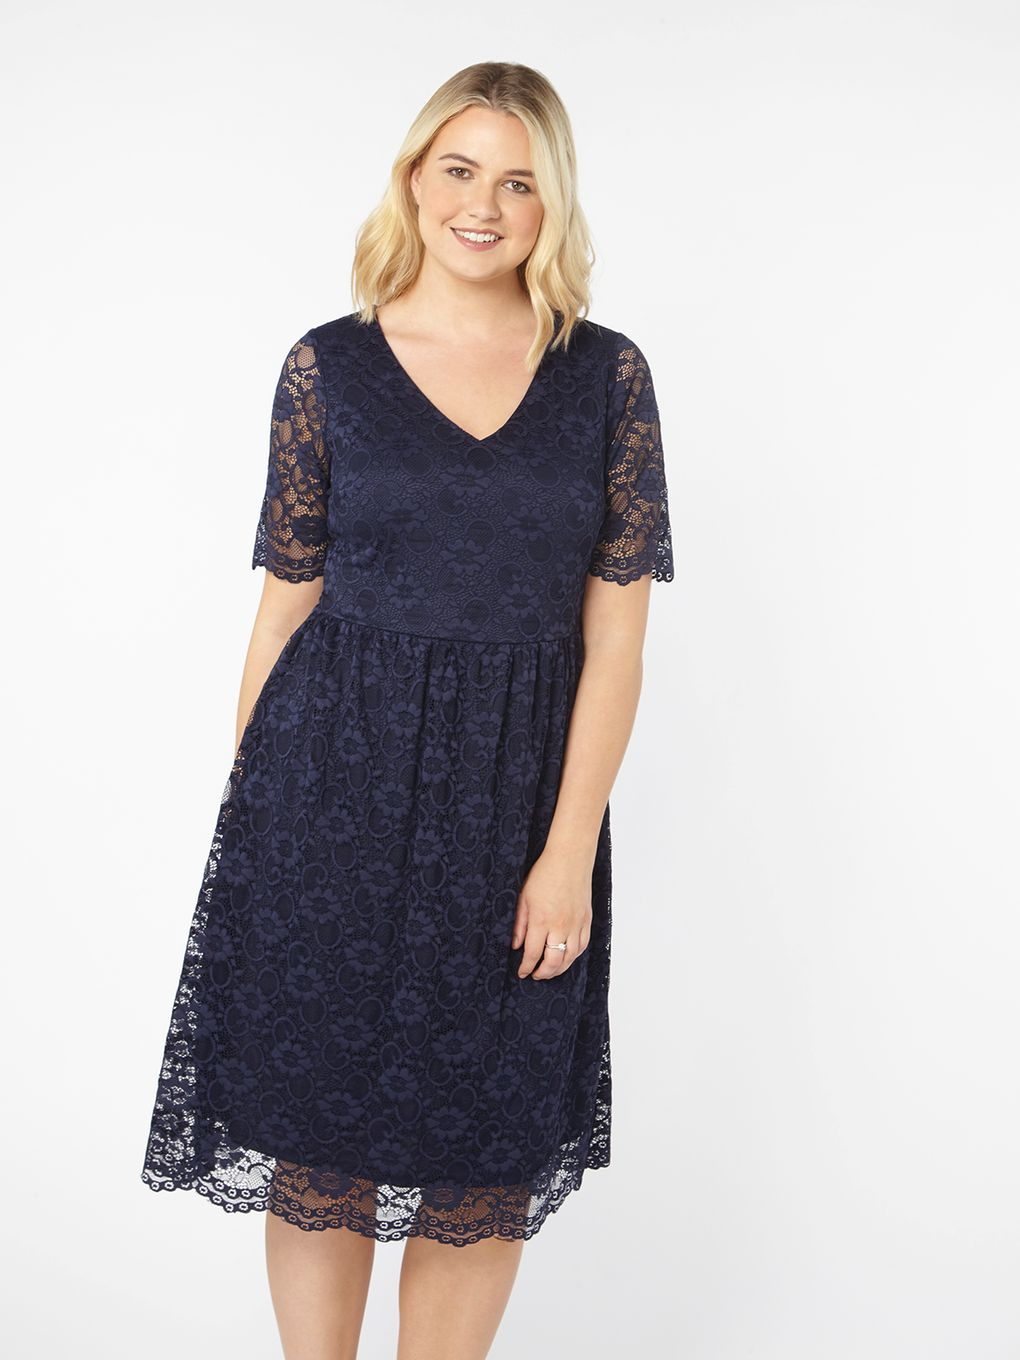 Navy Blue Lace Fit and Flare Dress From Evans